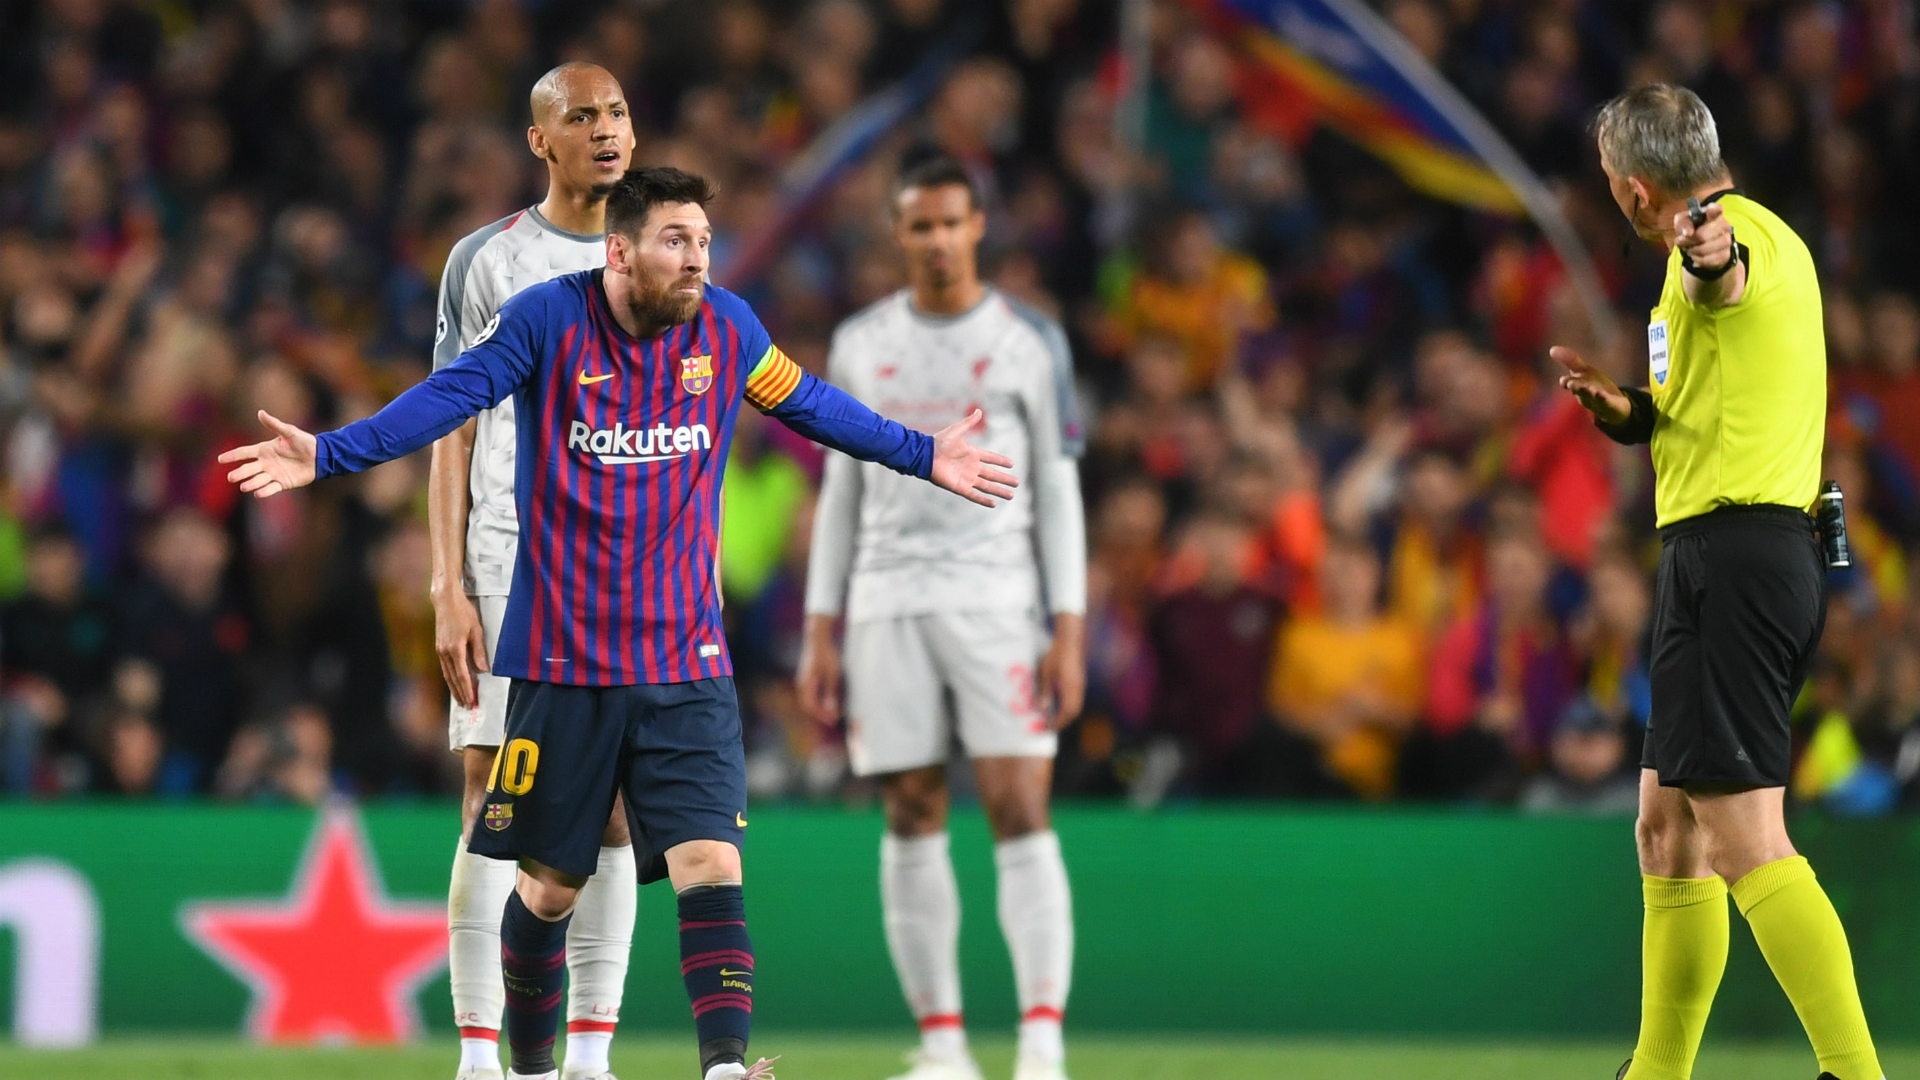 Liverpool fans petition to get Messi banned for 'punching